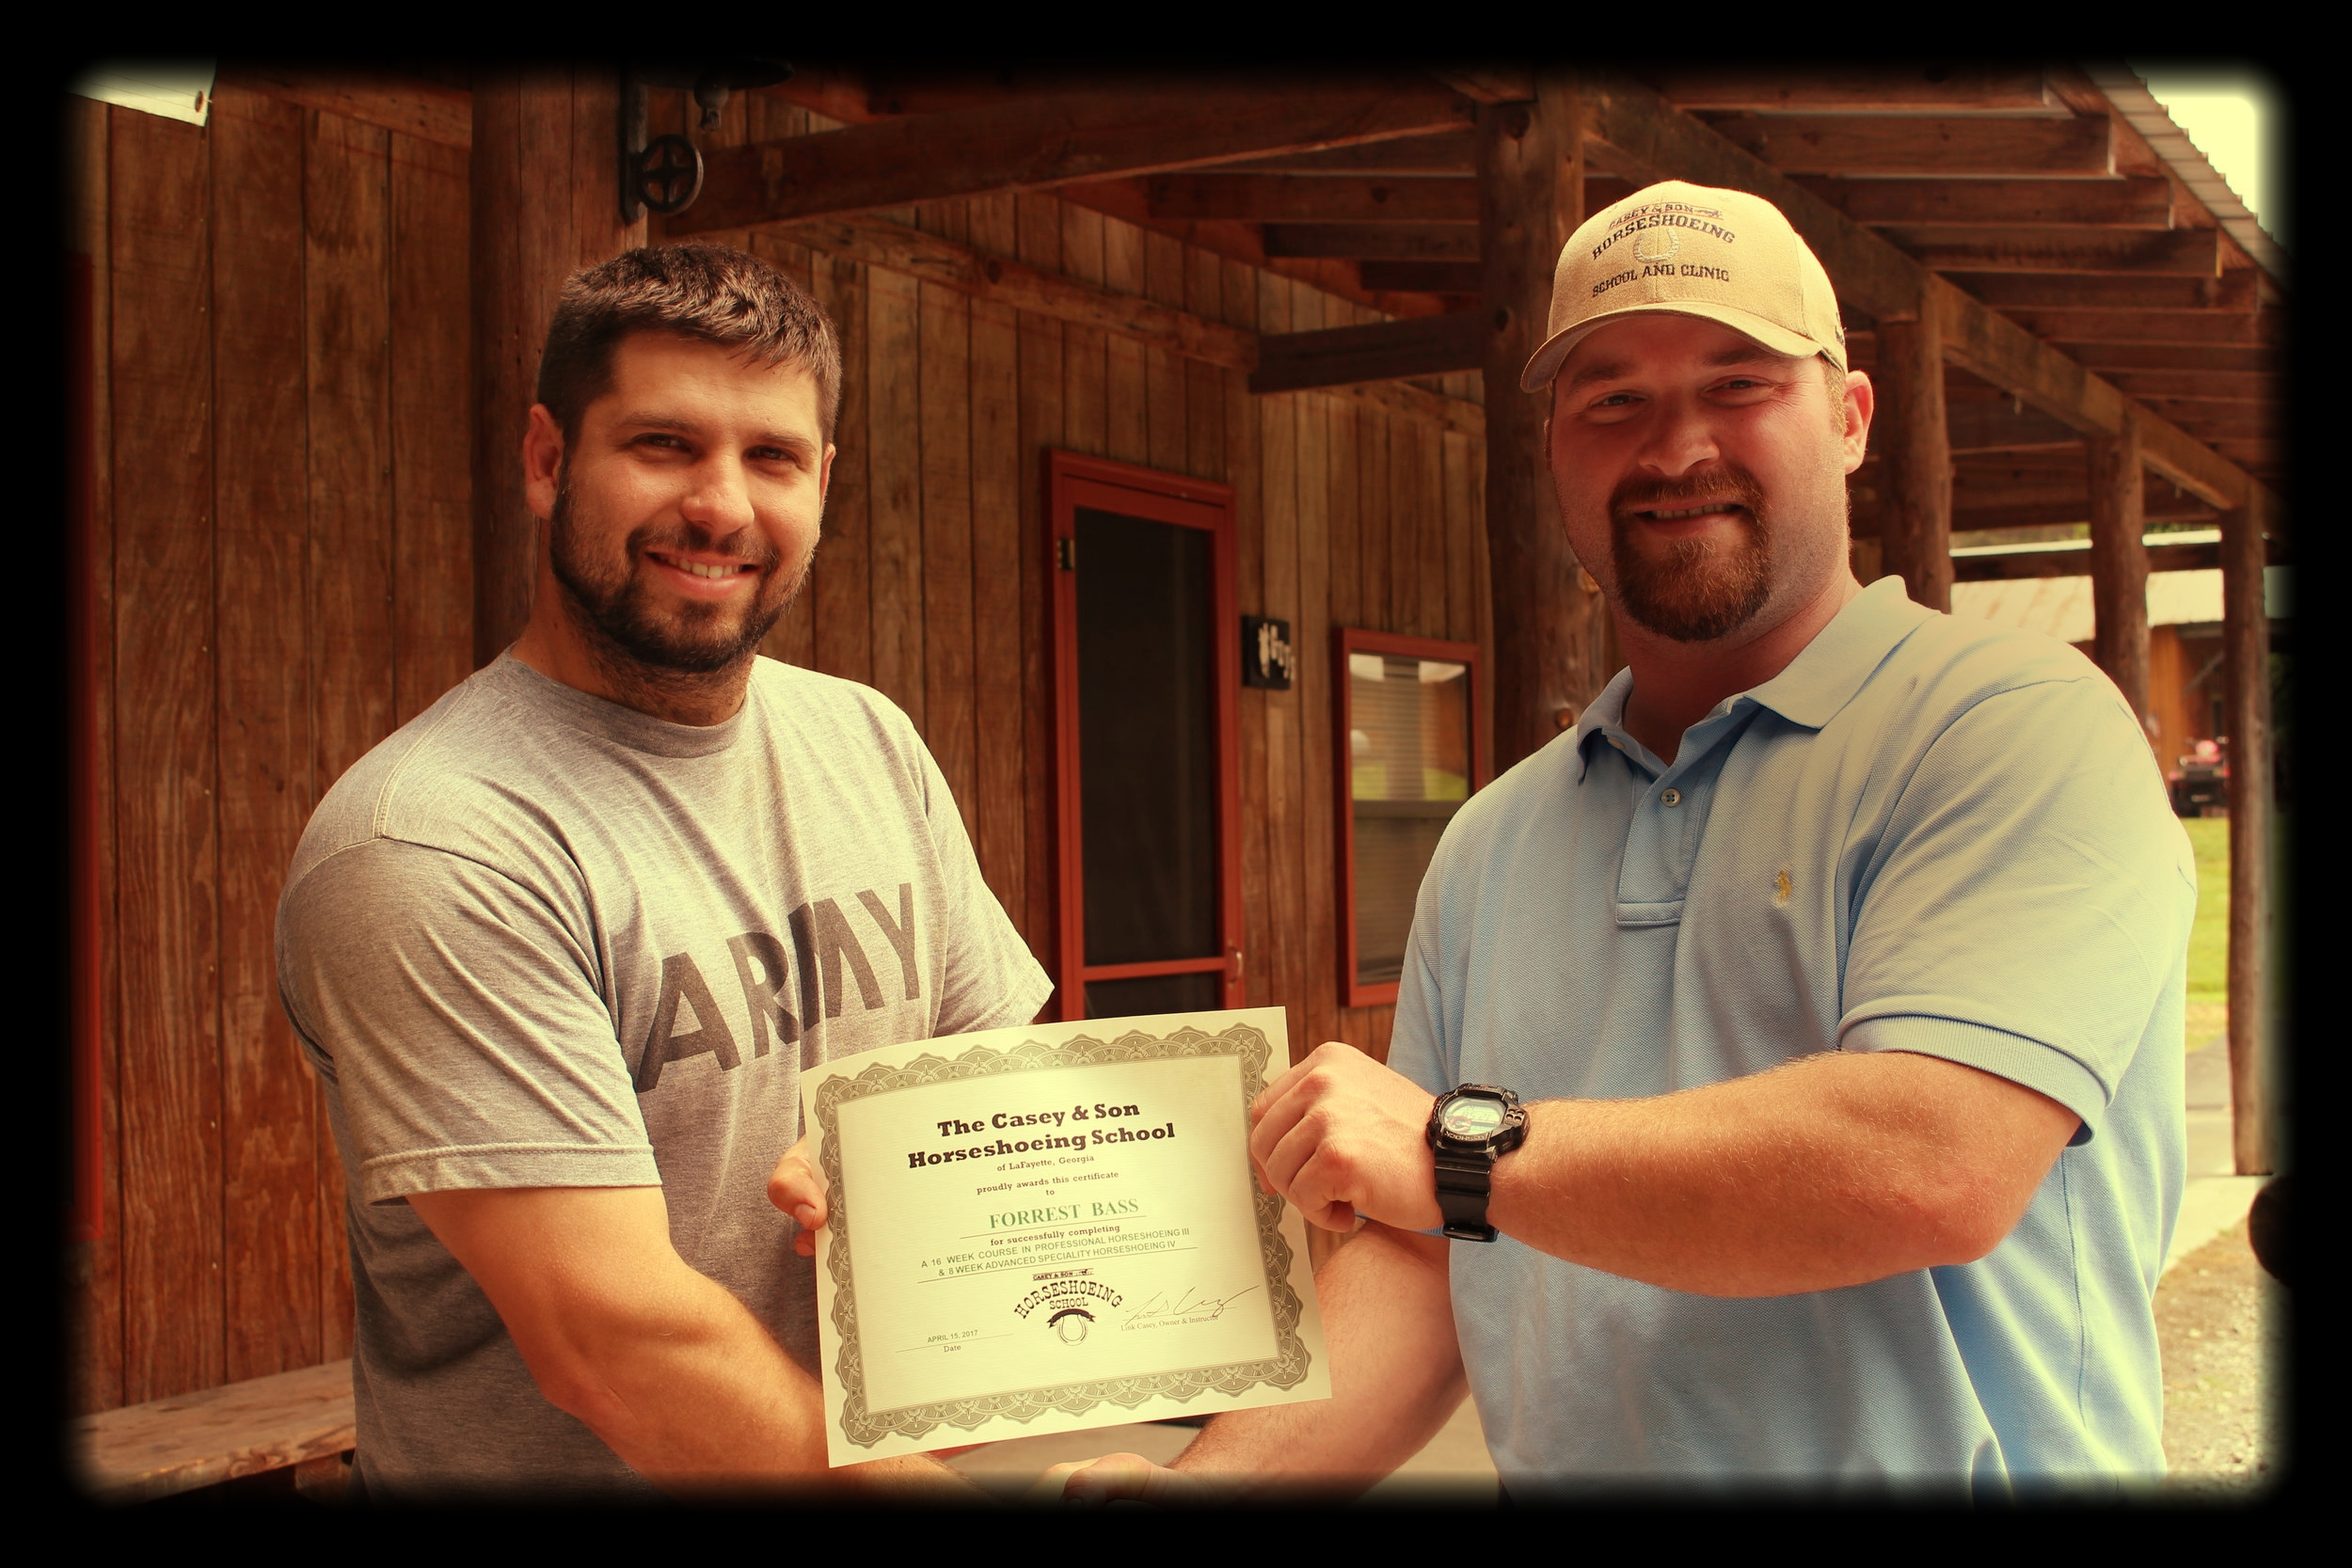 Forrest Bass from South Georgia receiving his 24 week graduation certificate from Casey & Son Horseshoeing School (son) Link Casey, Owner, Master Instructor & Farrier.